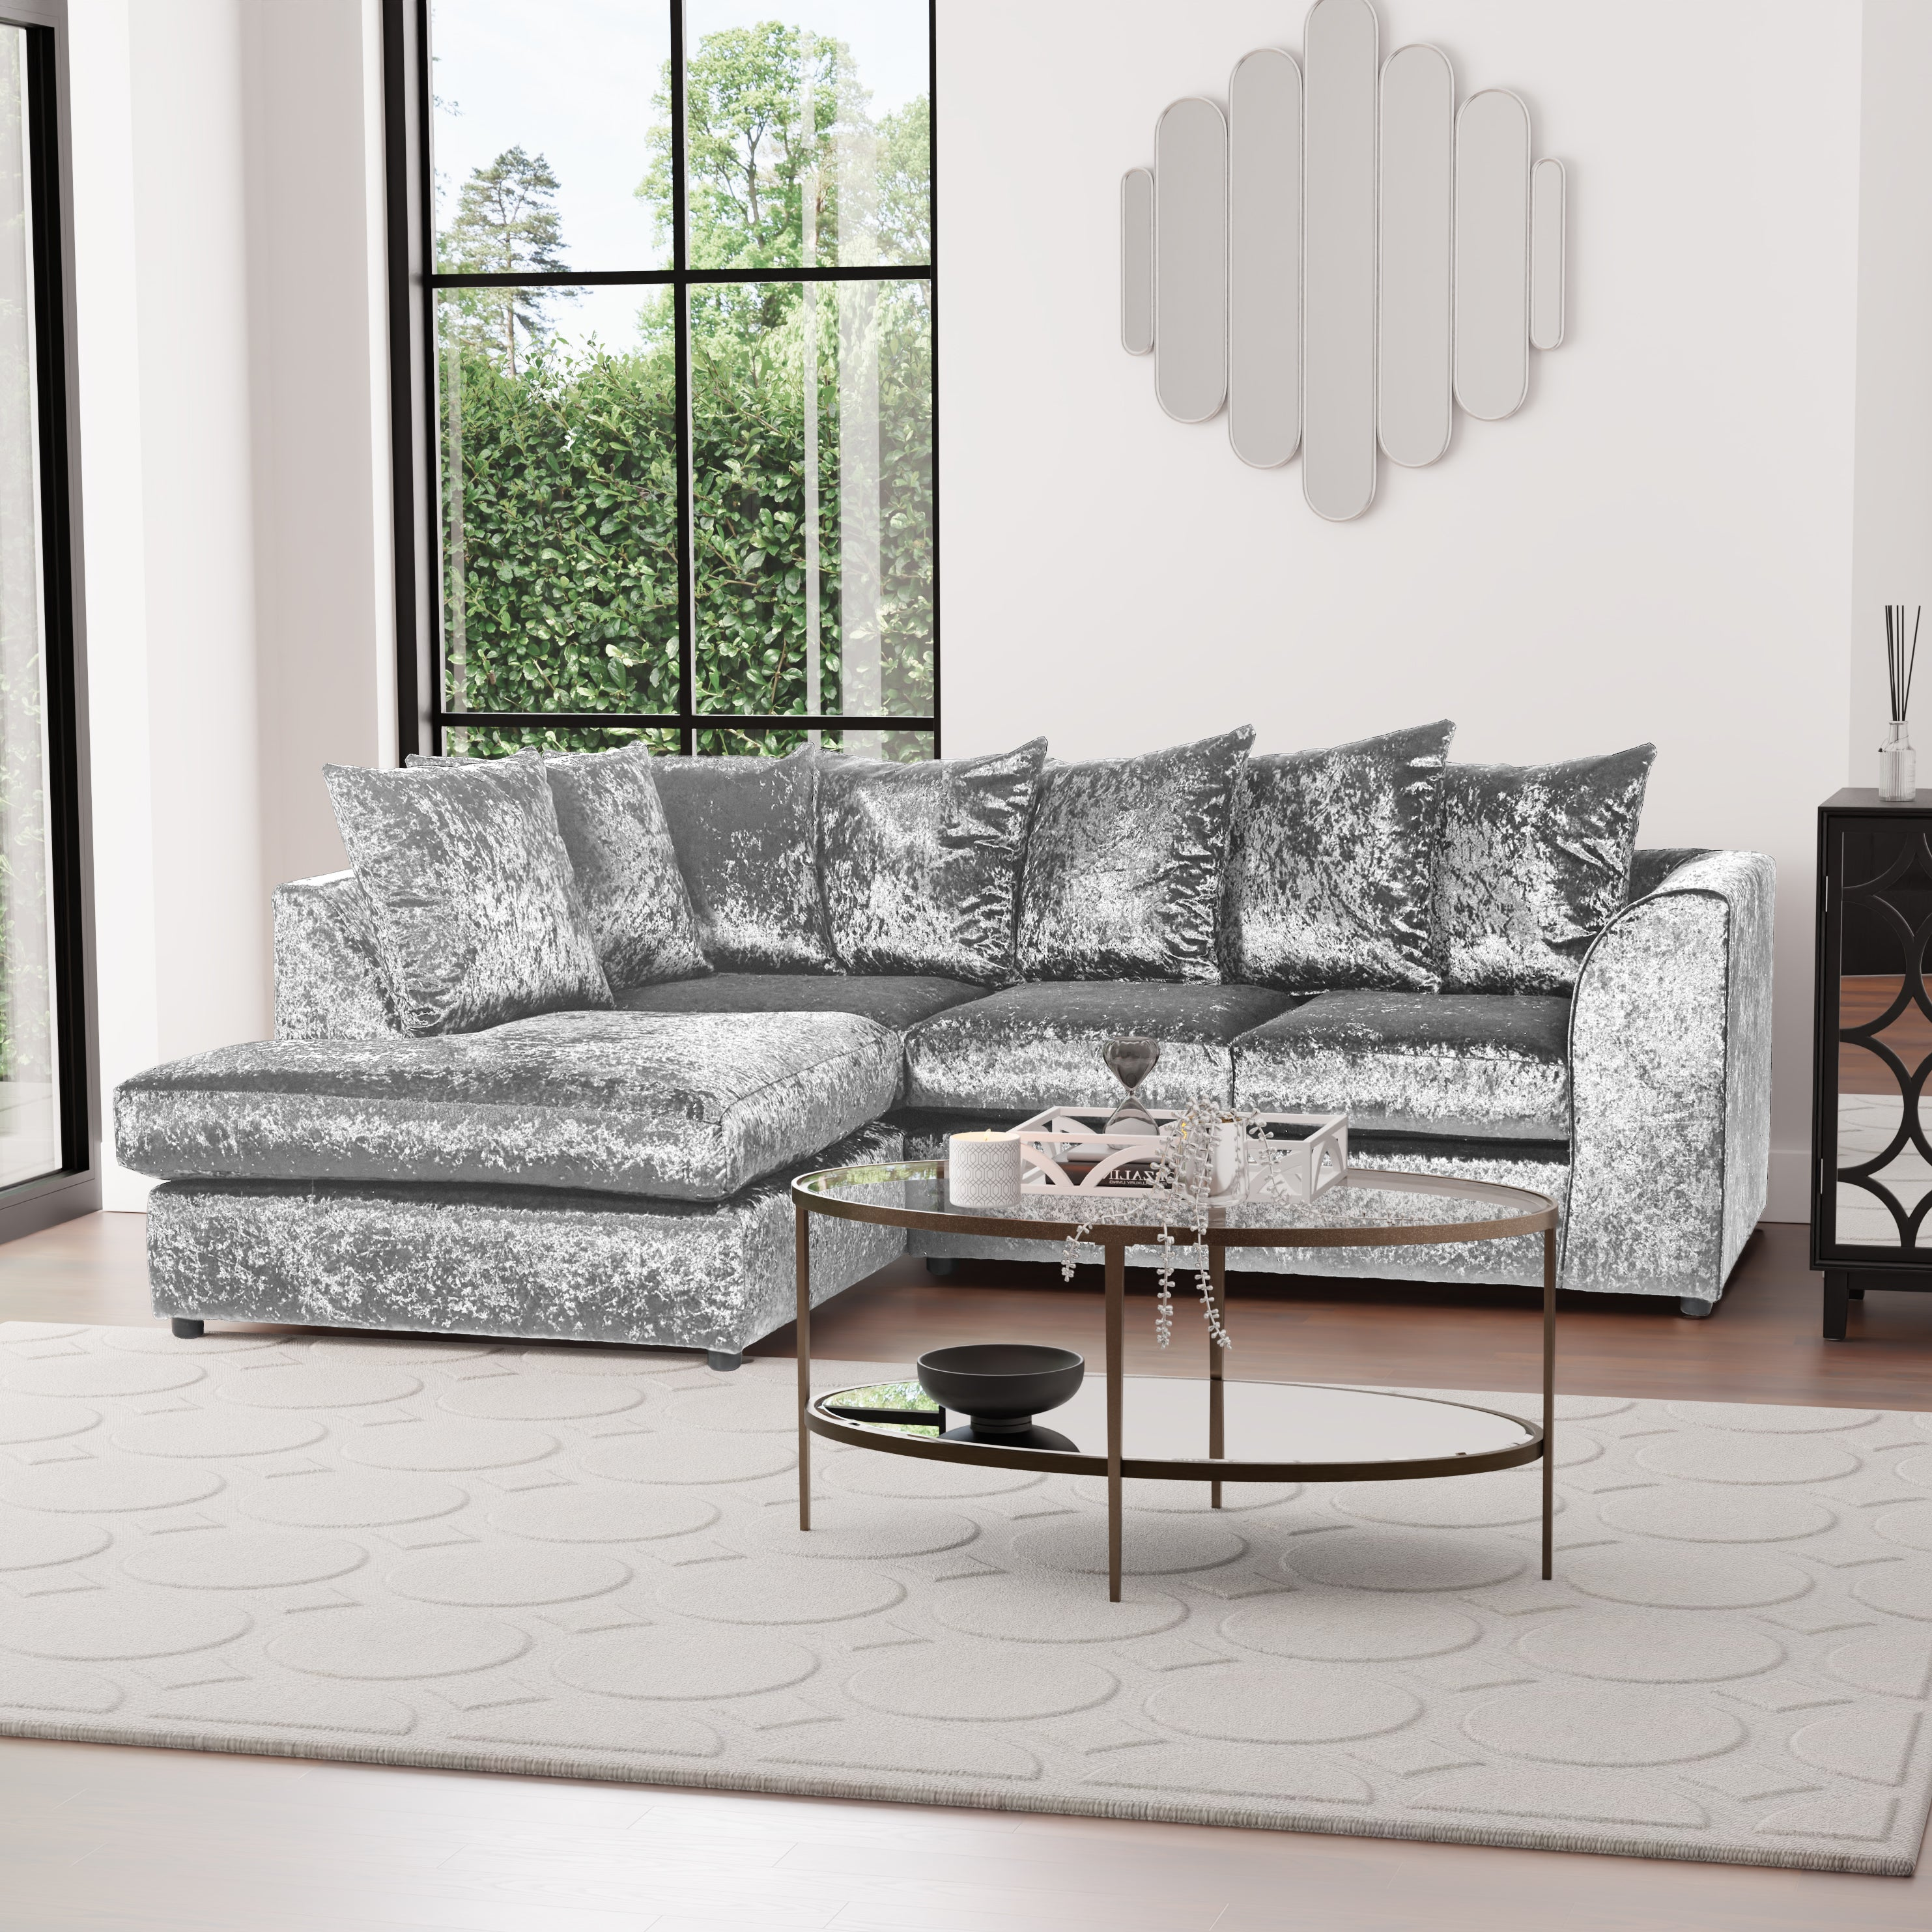 The Original Sofa Company Blake Crushed Velvet Left Hand Corner Sofa Silver 76x215x166cm